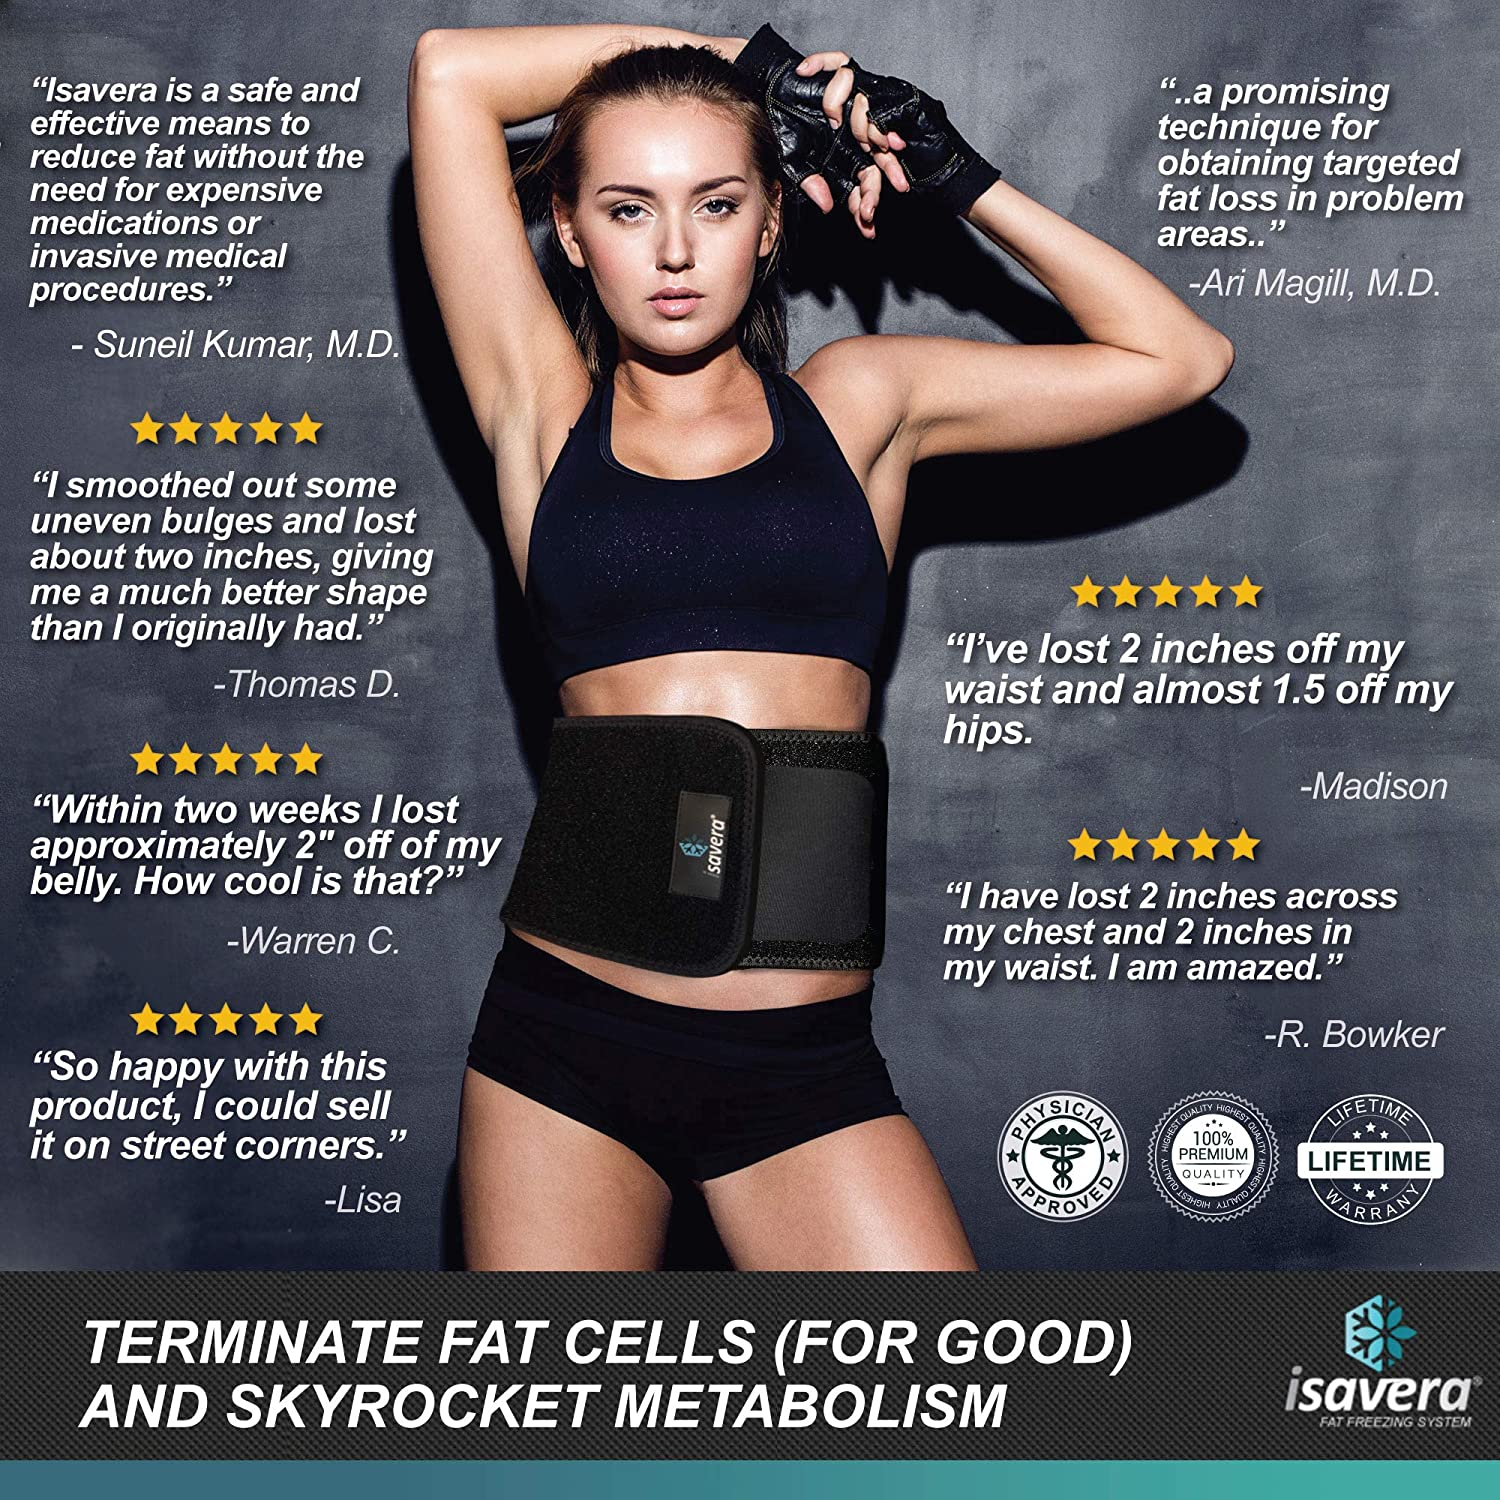 cf600955b94b7 Amazon.com: Isavera Fat Freezing System - Freeze Fat Cells at Home - Easy  Fat Loss with Cold Body Sculpting Wrap Belt - Shrink Tummy and Shape  Stomach with ...